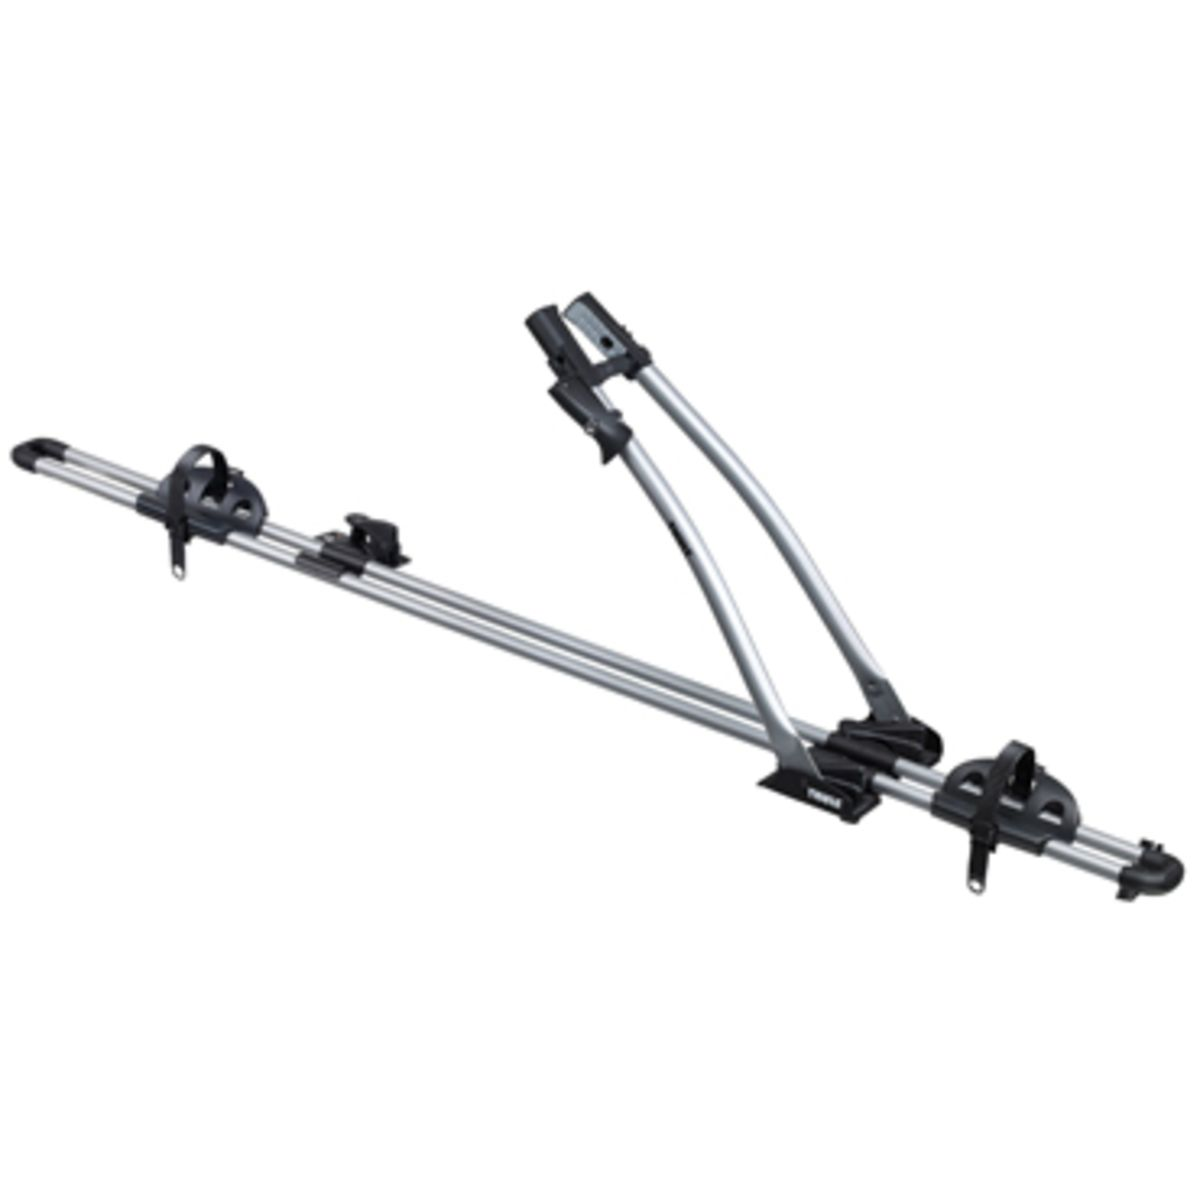 FreeRide 532 bike rack